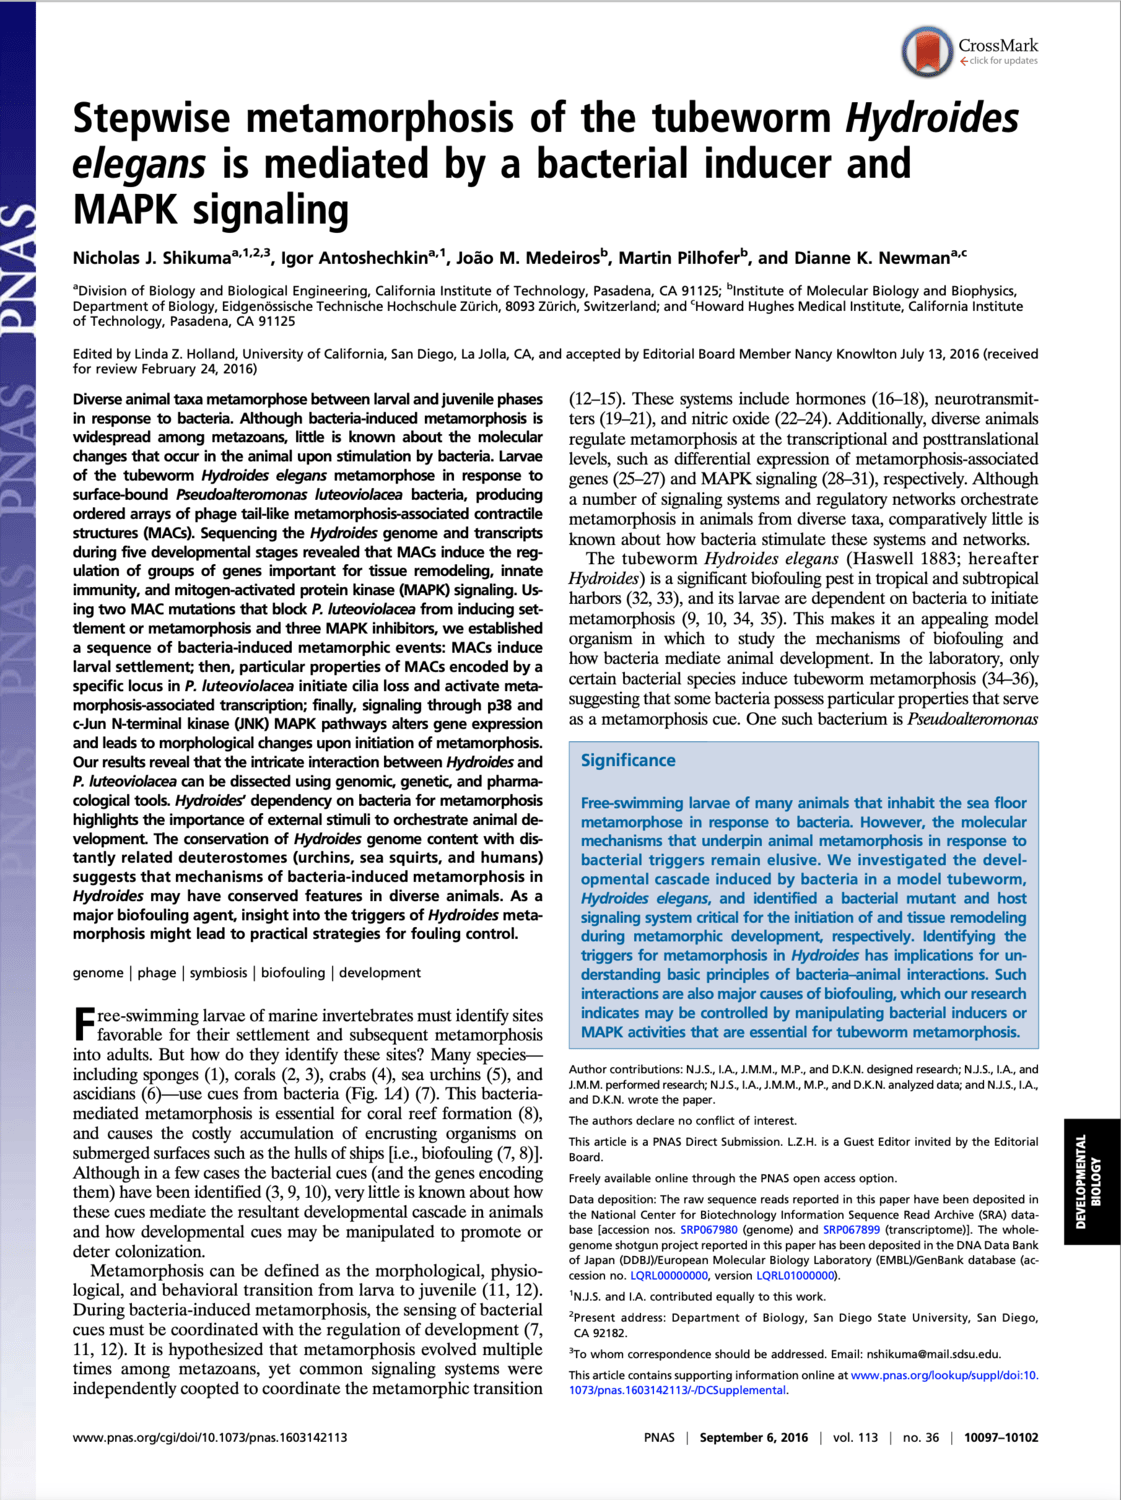 Stepwise metamorphosis of the tubeworm Hydroides elegans is mediated by a bacterial inducer and MAPK signaling